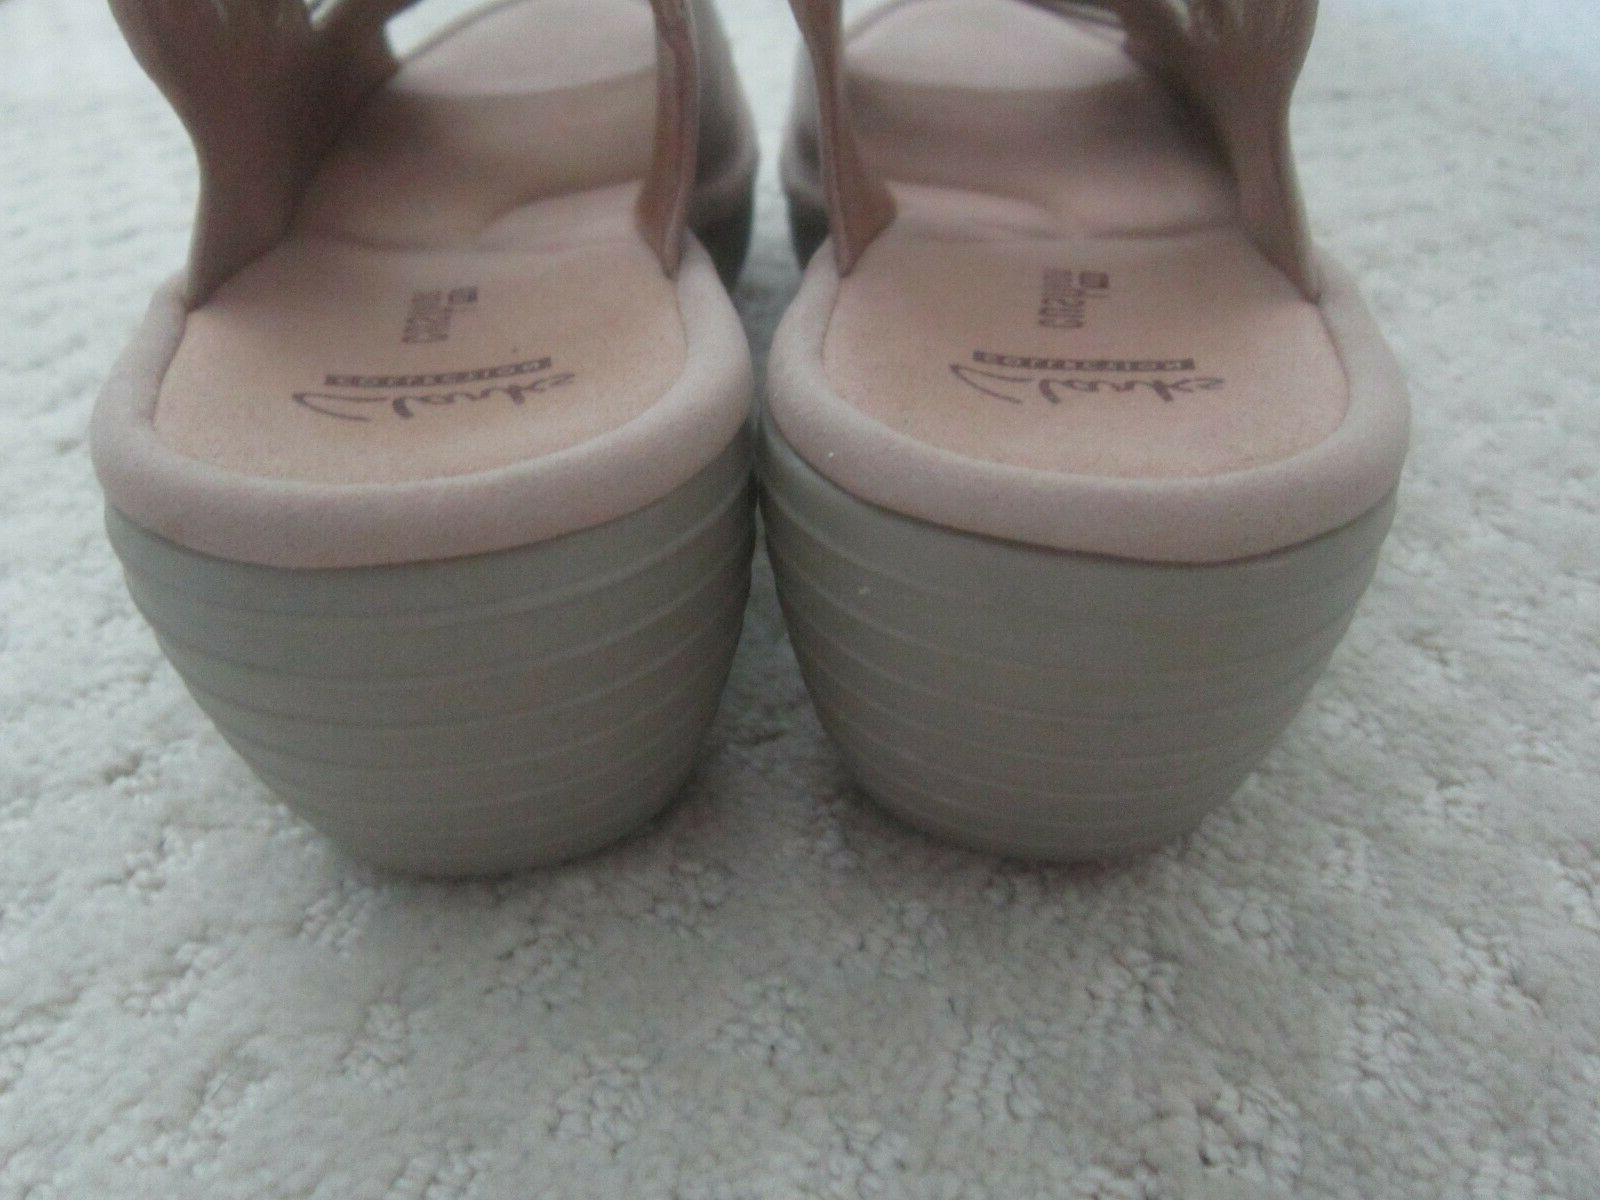 Clarks Reedly Juno Leather Wedge Sandals Tan Size 8 NWOB